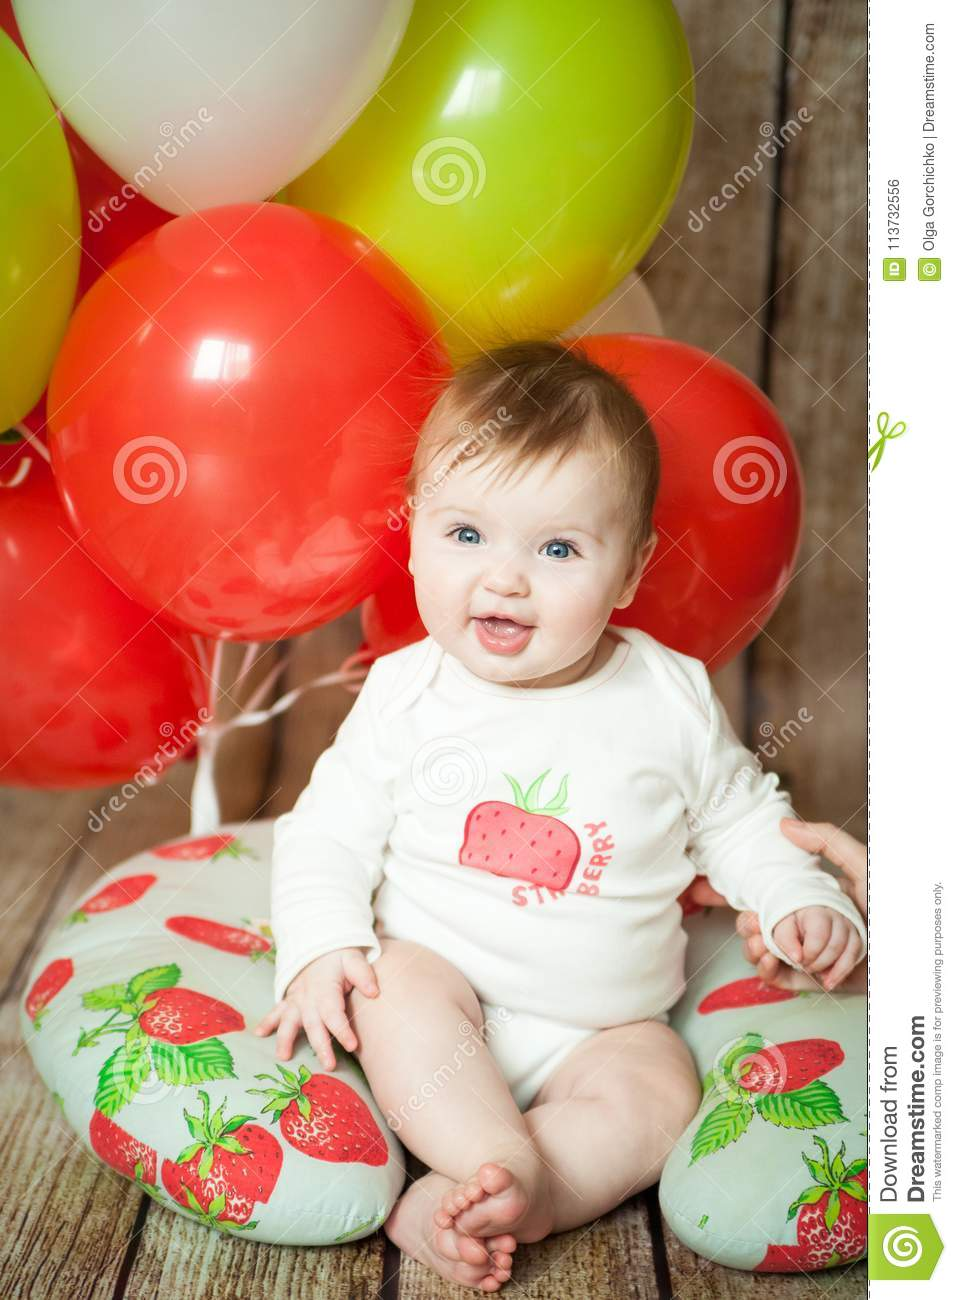 Mini Birthday With Strawberry Theme Cute 6 Months Baby Girl Colorful Balloons